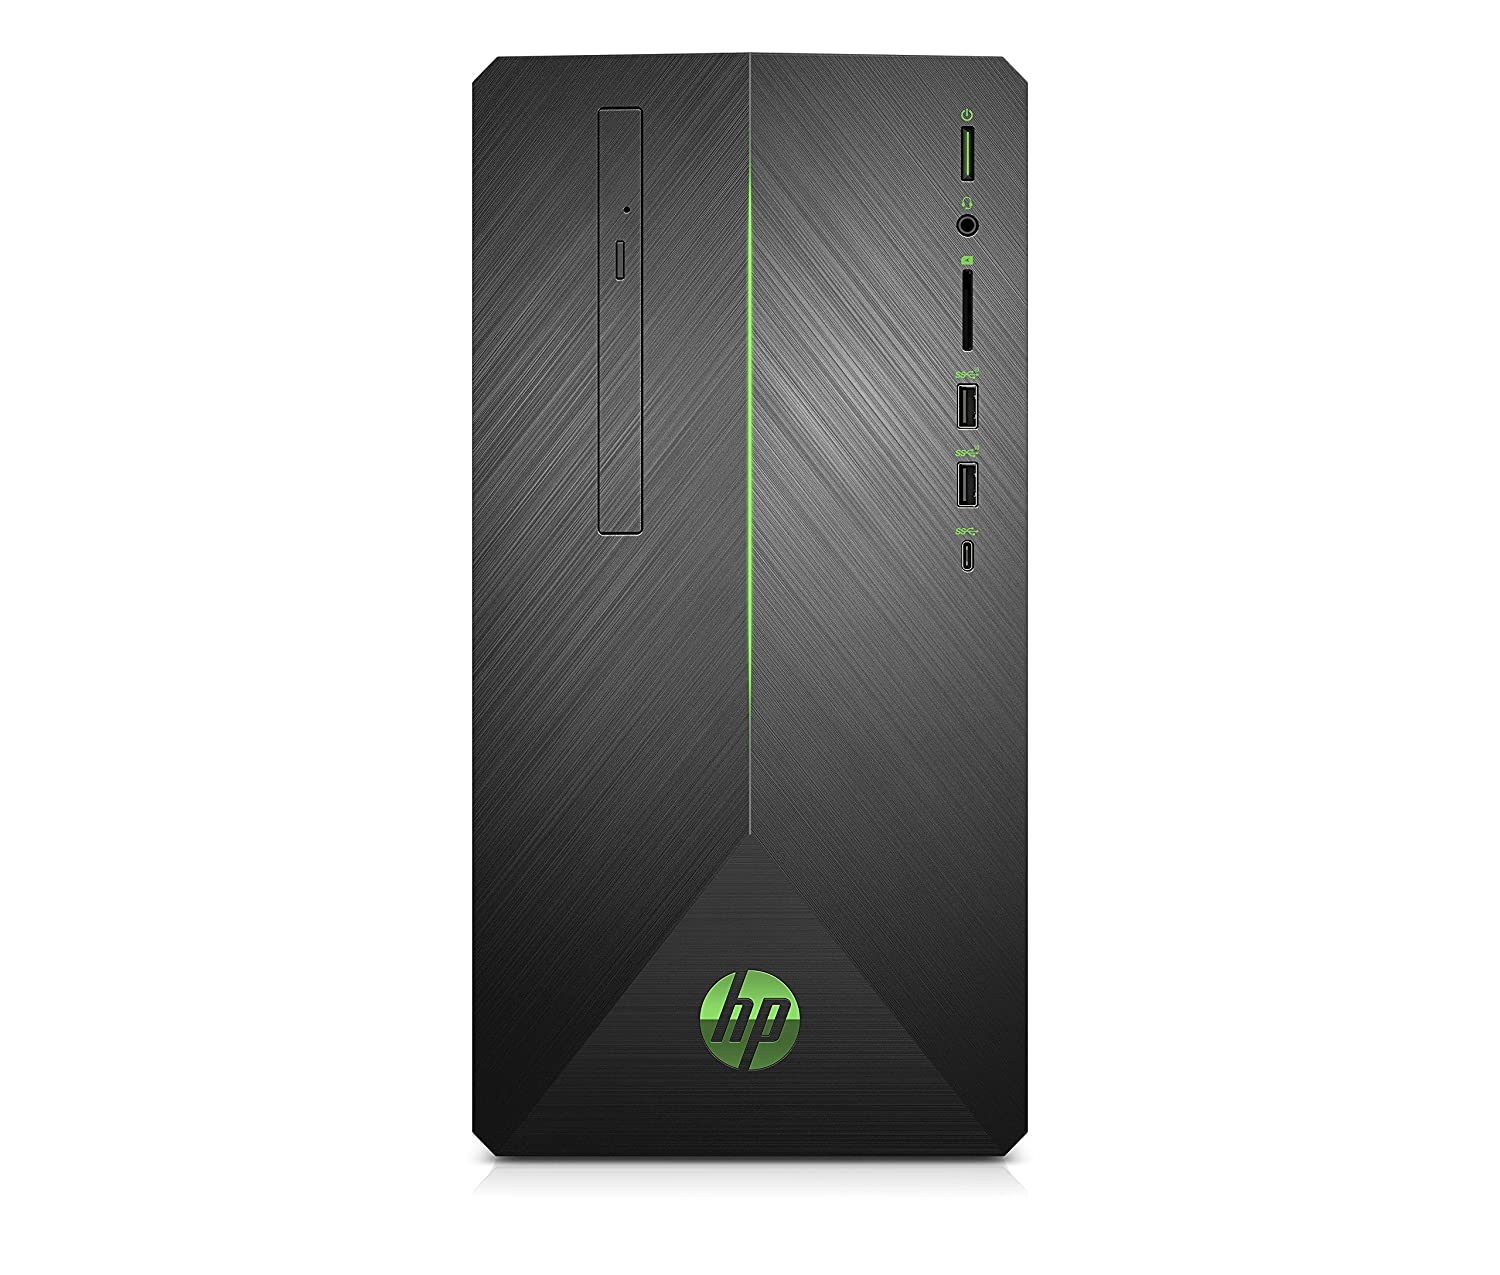 HP Pavilion Gaming 690-0000ns- Ordenador de sobremesa (AMD Ryzen5-2600, 8GB RAM,128GB SDD + 1TB HDD, Nvidia GTX 1060 6GB, Windows 10), color negro